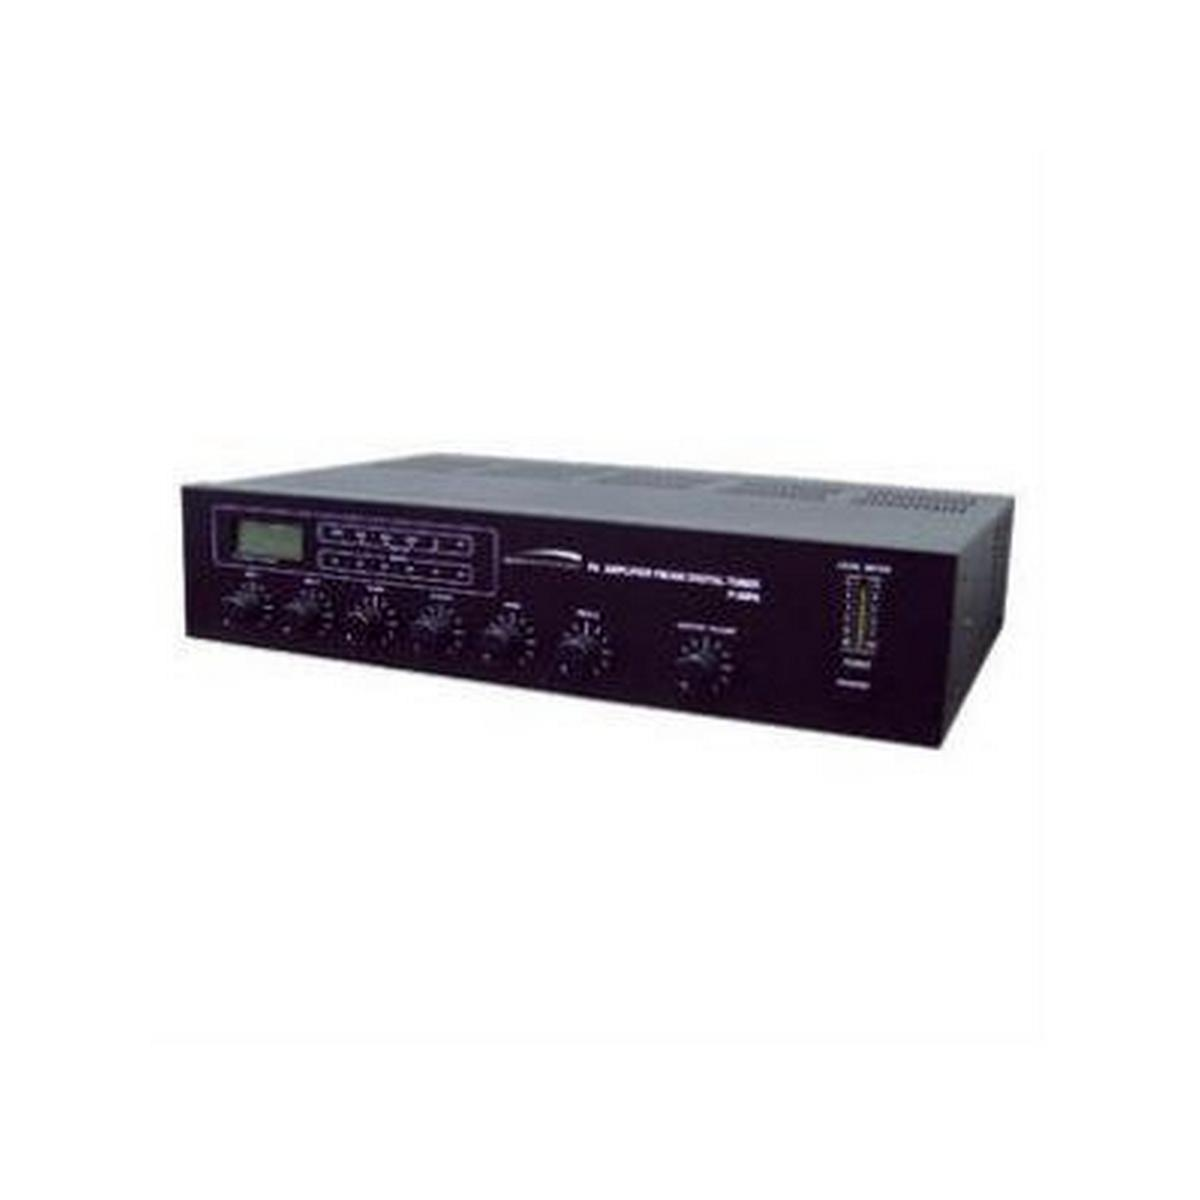 Speco P30FA 30W PA Amplifier with Digital AM/FM Tuner